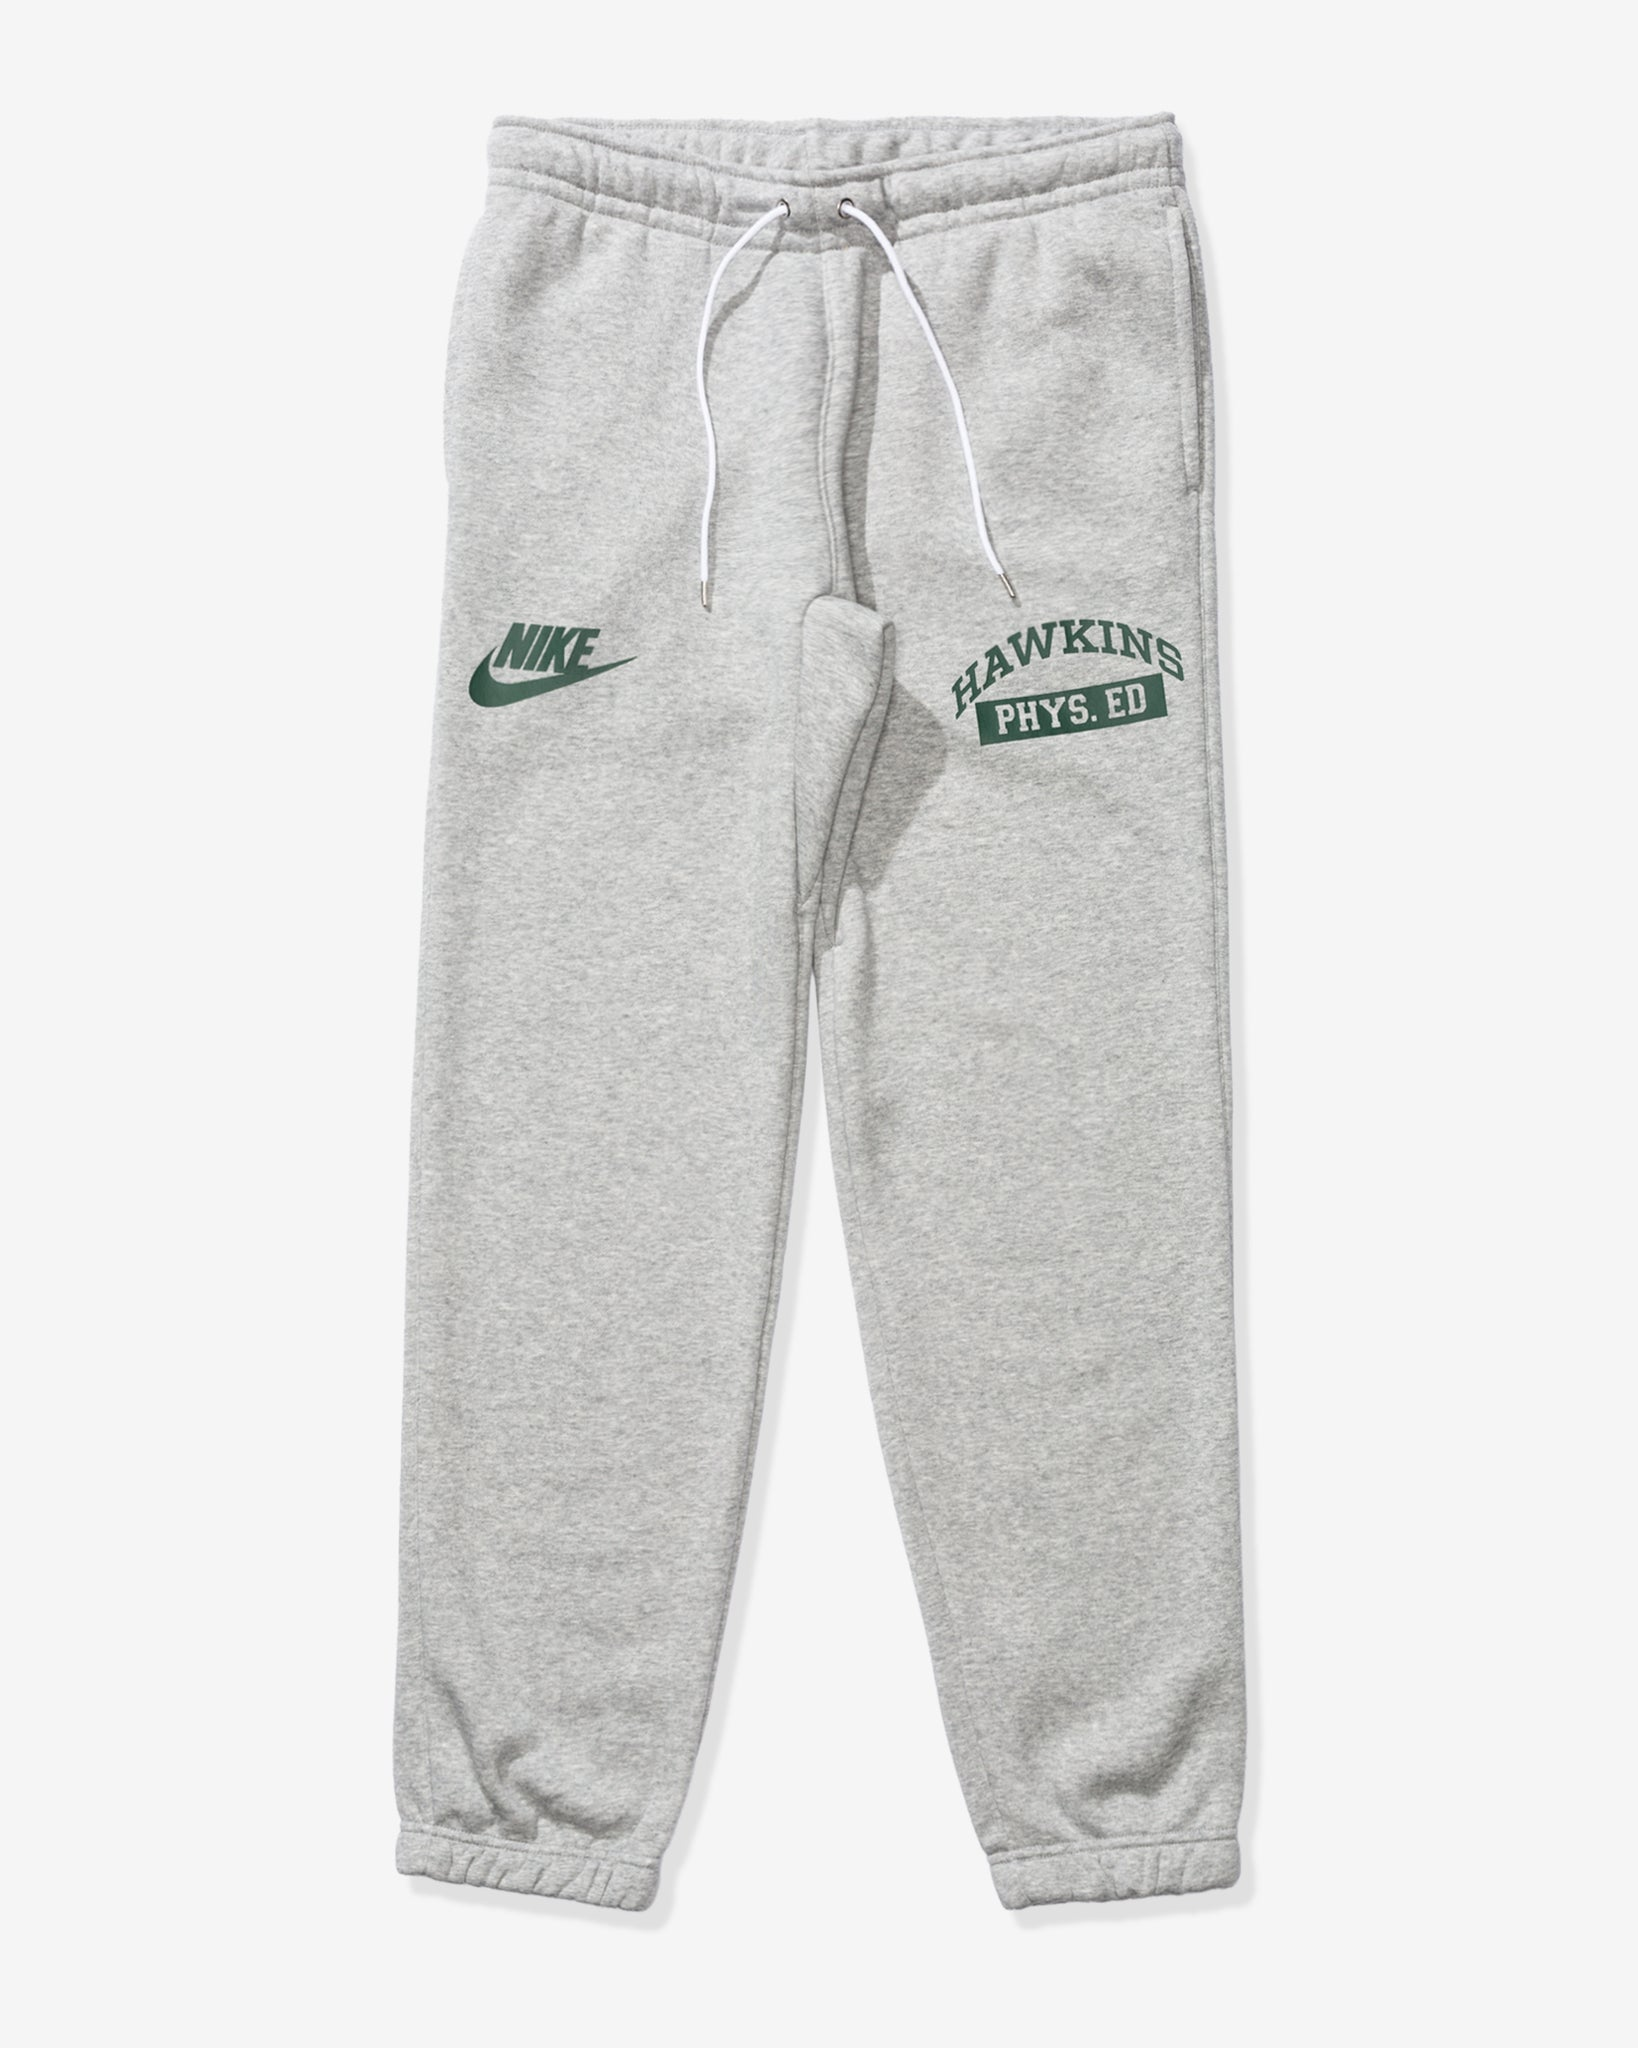 NIKE X STRANGER THINGS CLUB PANT - DKGREYHEATHER/WHITE/FIR